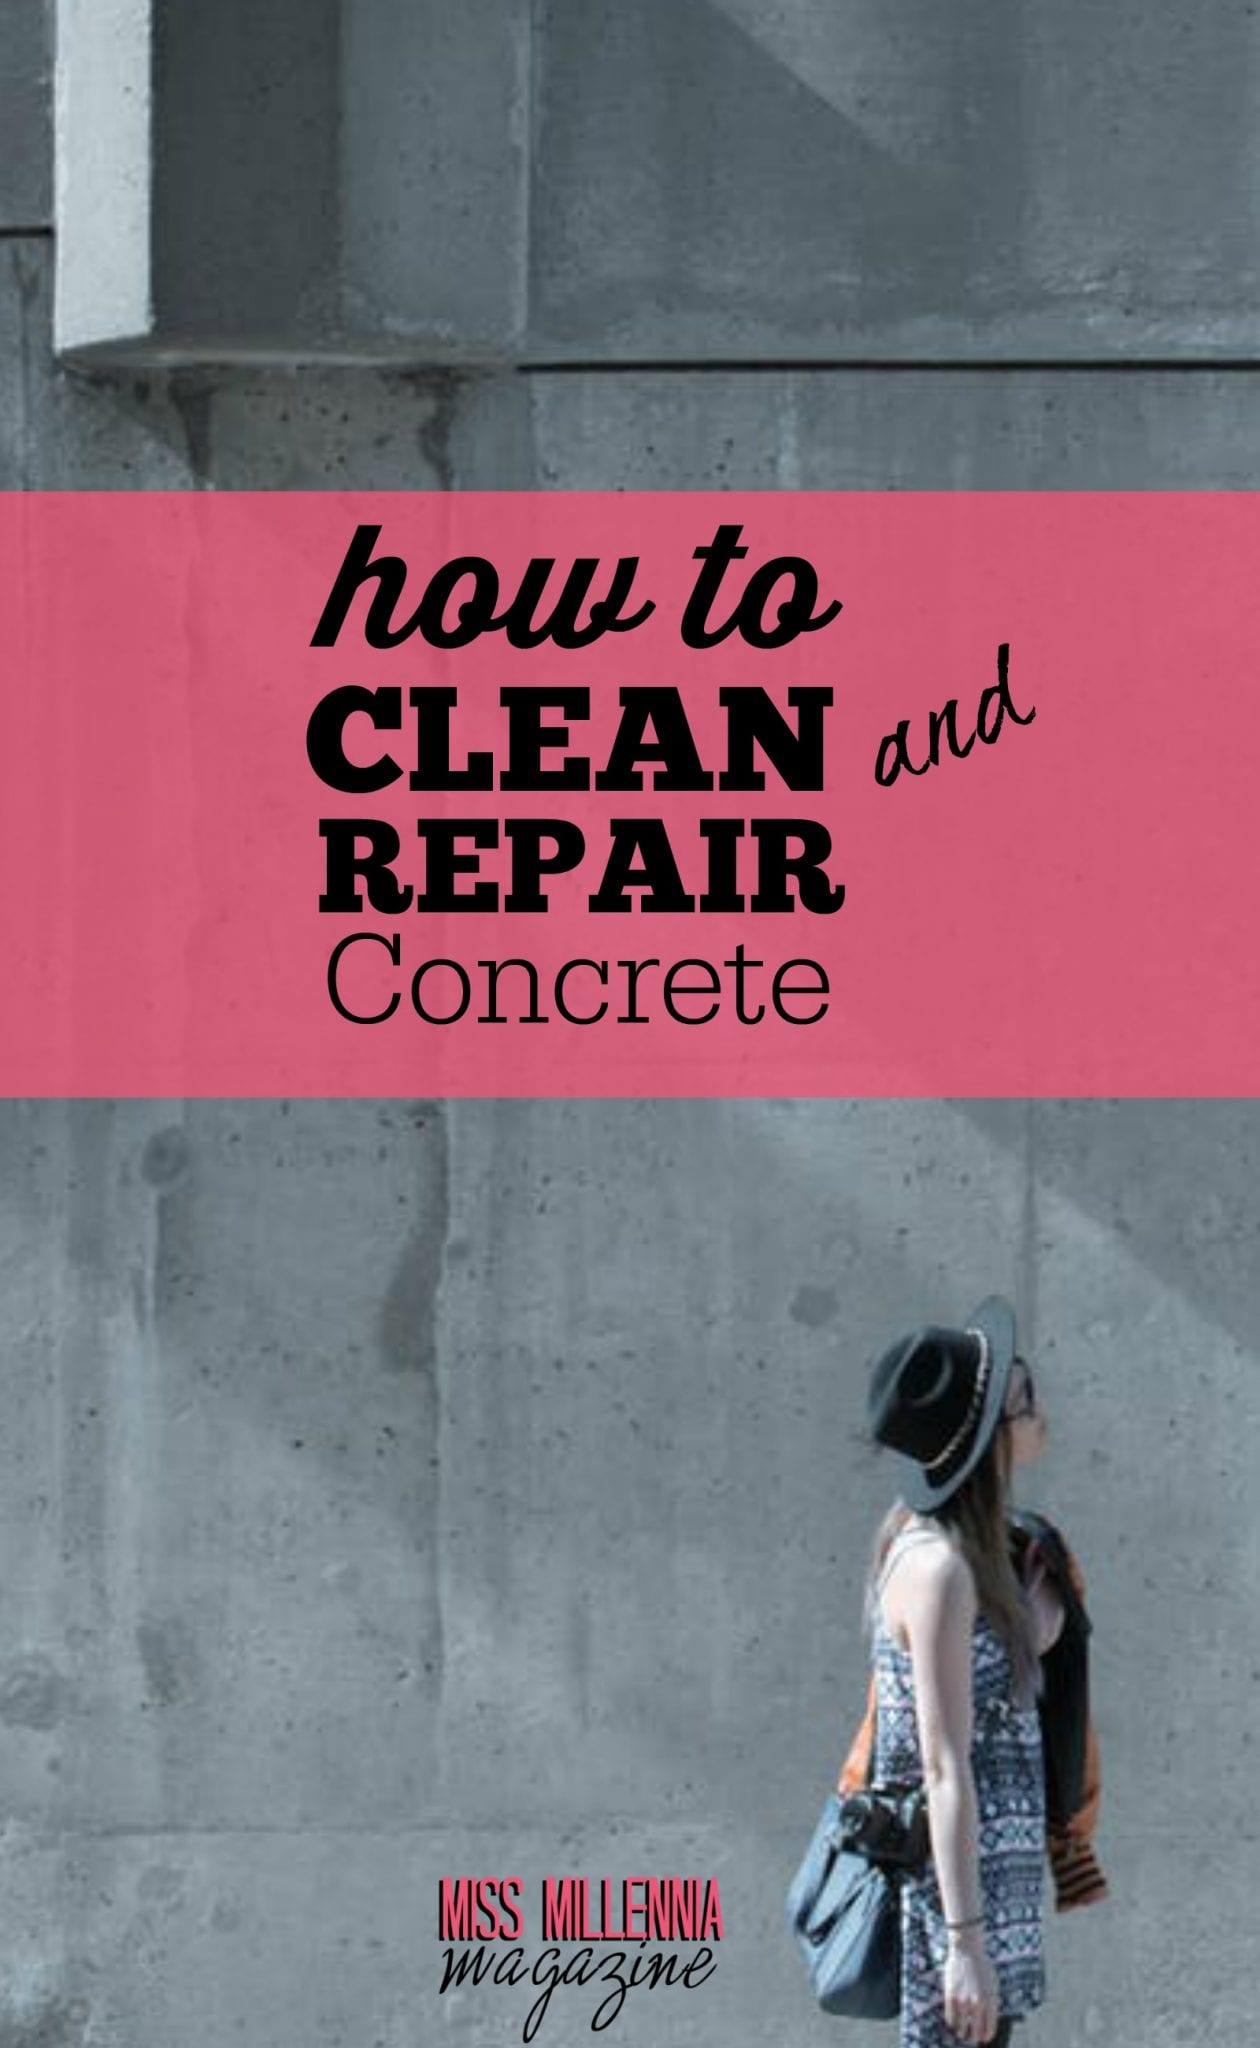 To clean and to repair concrete surfaces help your home's value and curb appeal stay high. Here are some helpful tips for you to do so.